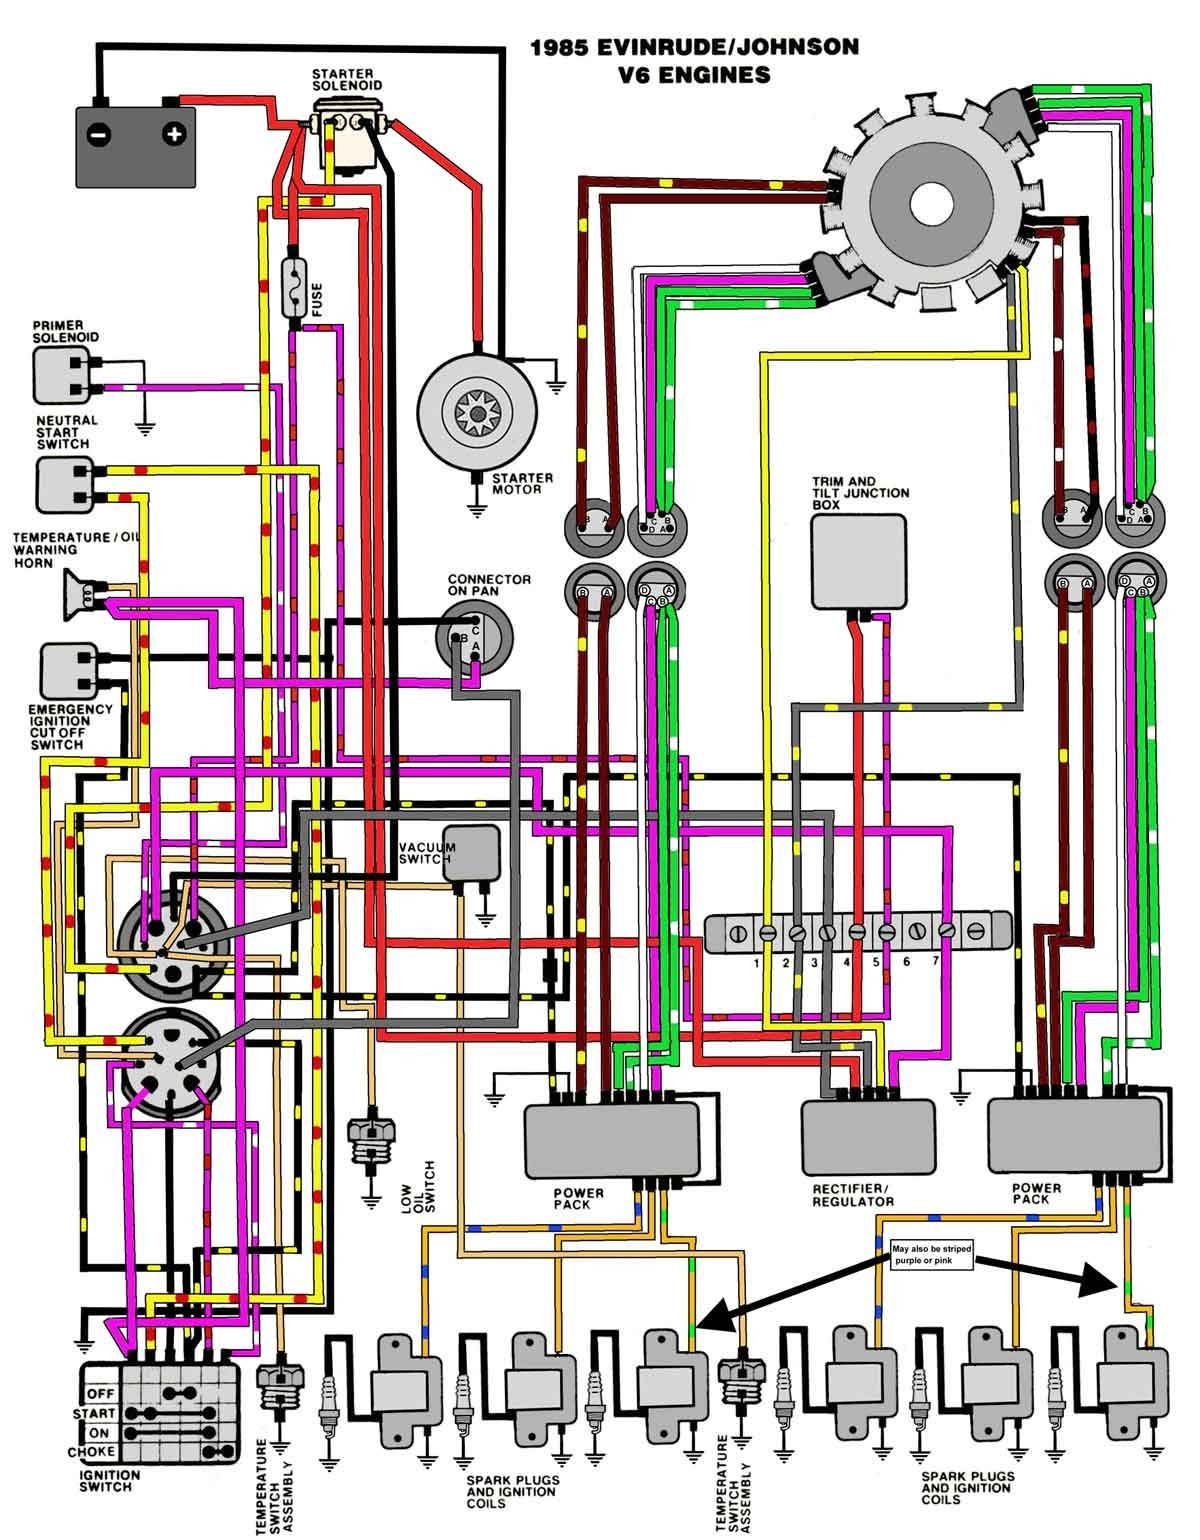 kubota l2950 wiring diagram online small garden design plans Installing a Light Switch Wiring Diagram  John Deere Ignition Wiring Diagram Bobcat Ignition Switch Diagram Gas Club Car Ignition Switch Wiring